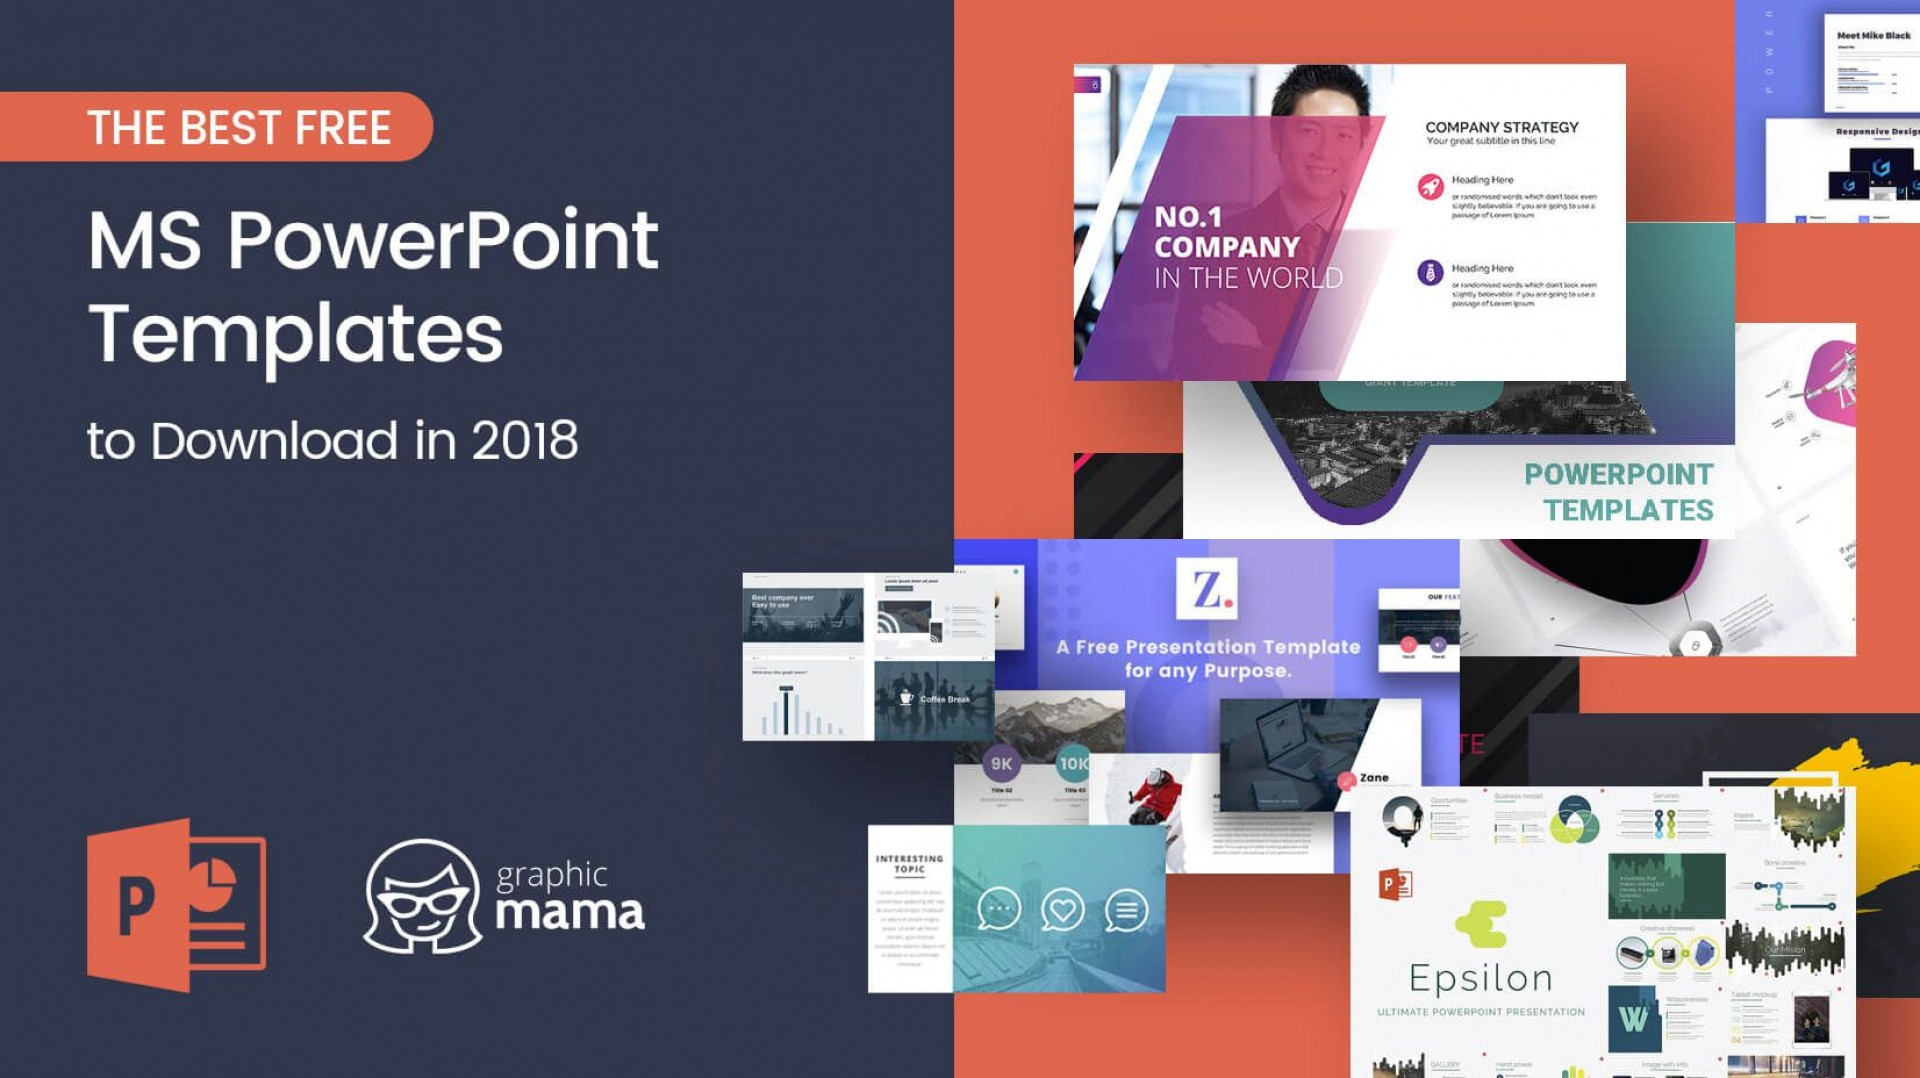 009 Stunning Free Powerpoint Presentation Template Inspiration  Templates 22 Slide For The Perfect Busines Strategy Download Engineering1920